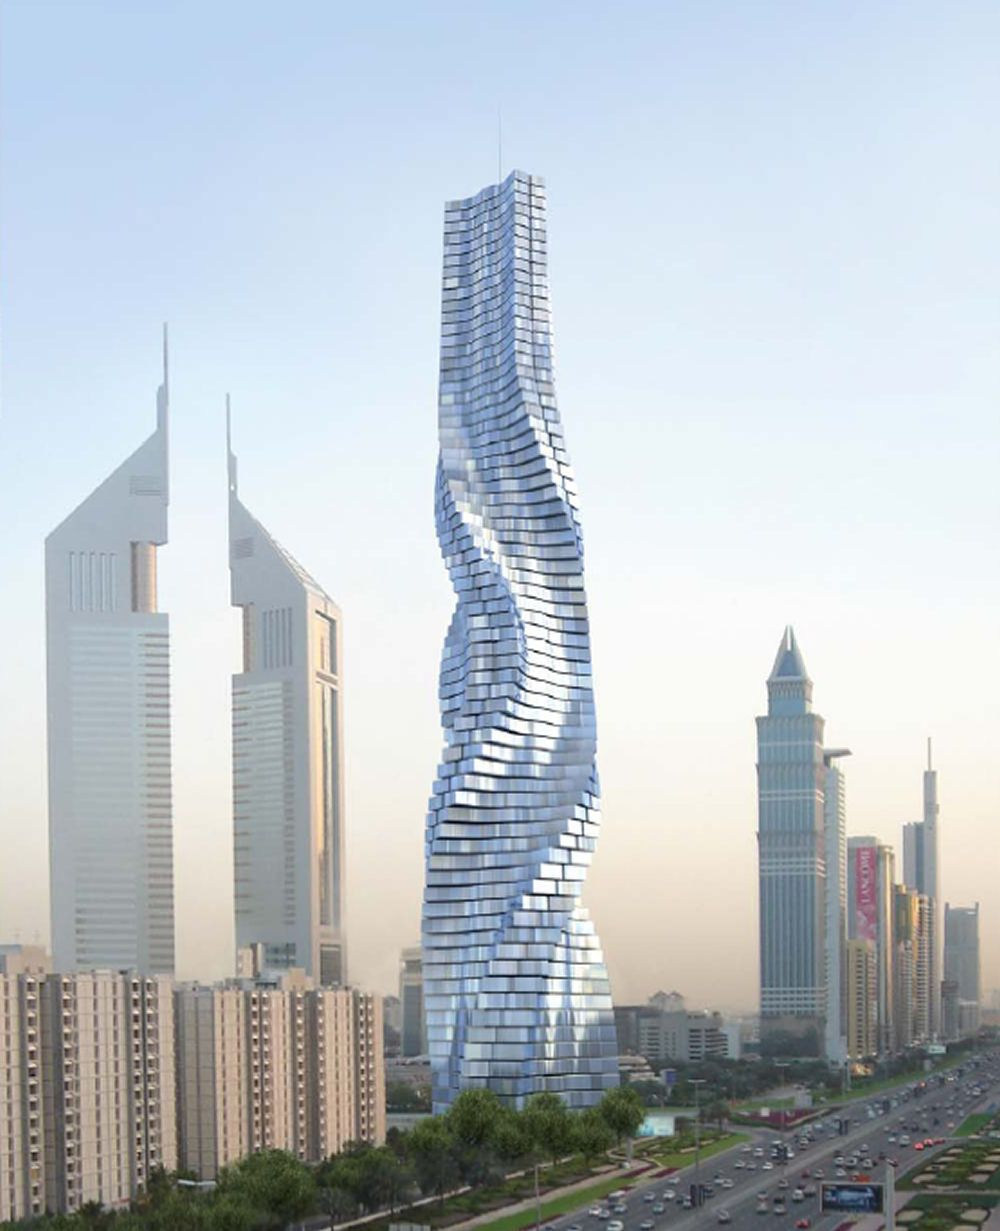 dynamic tower - architecture linked - architect & architectural